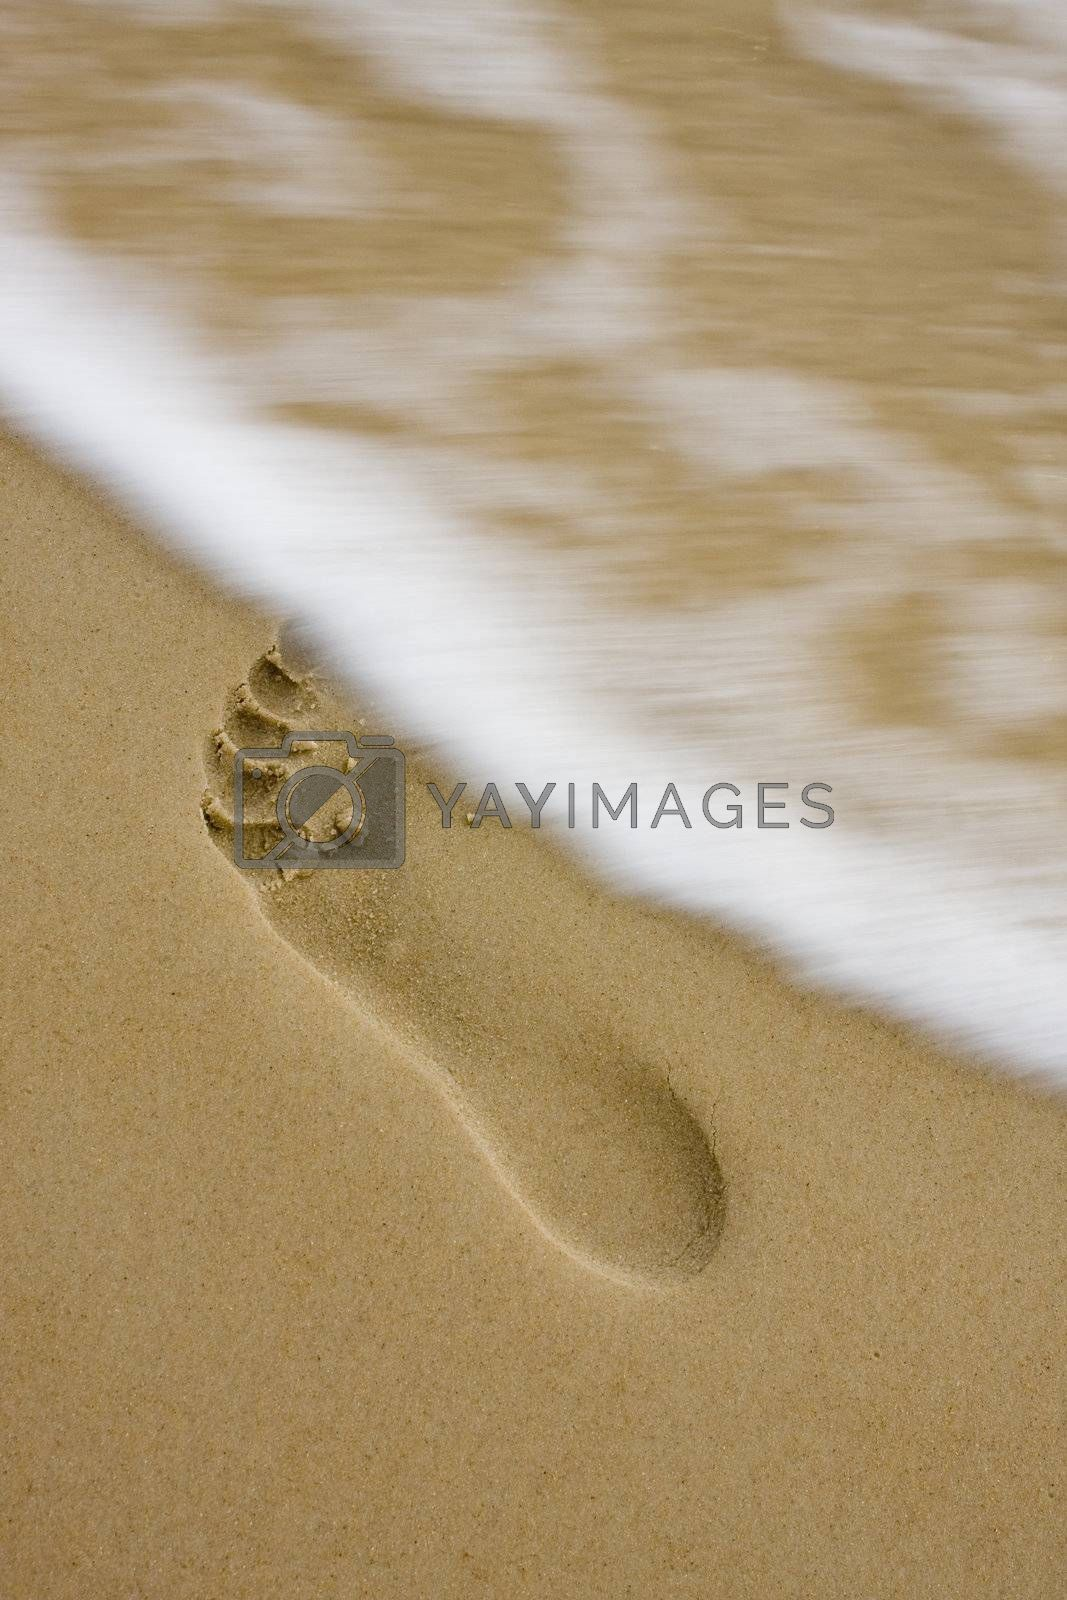 Footprint on the beach with little motion blurred wave